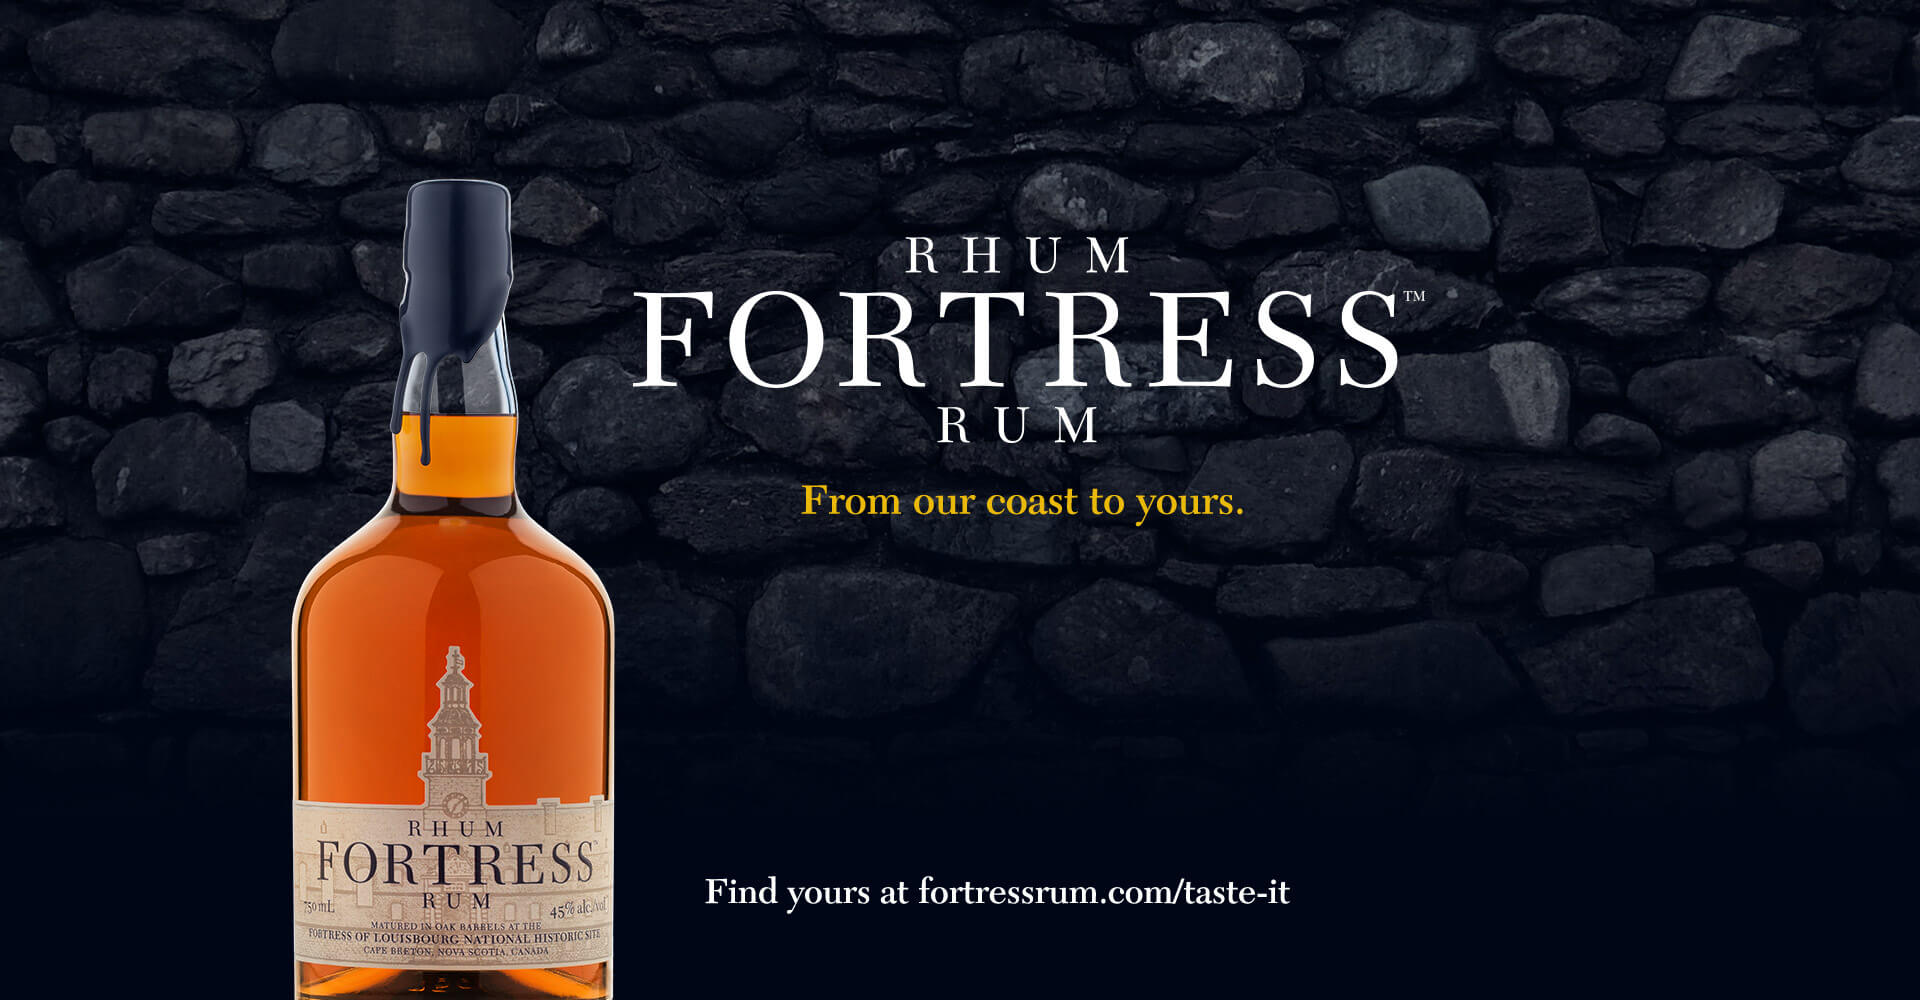 Fortress Rum socail media ad, Halifax Distilling co.